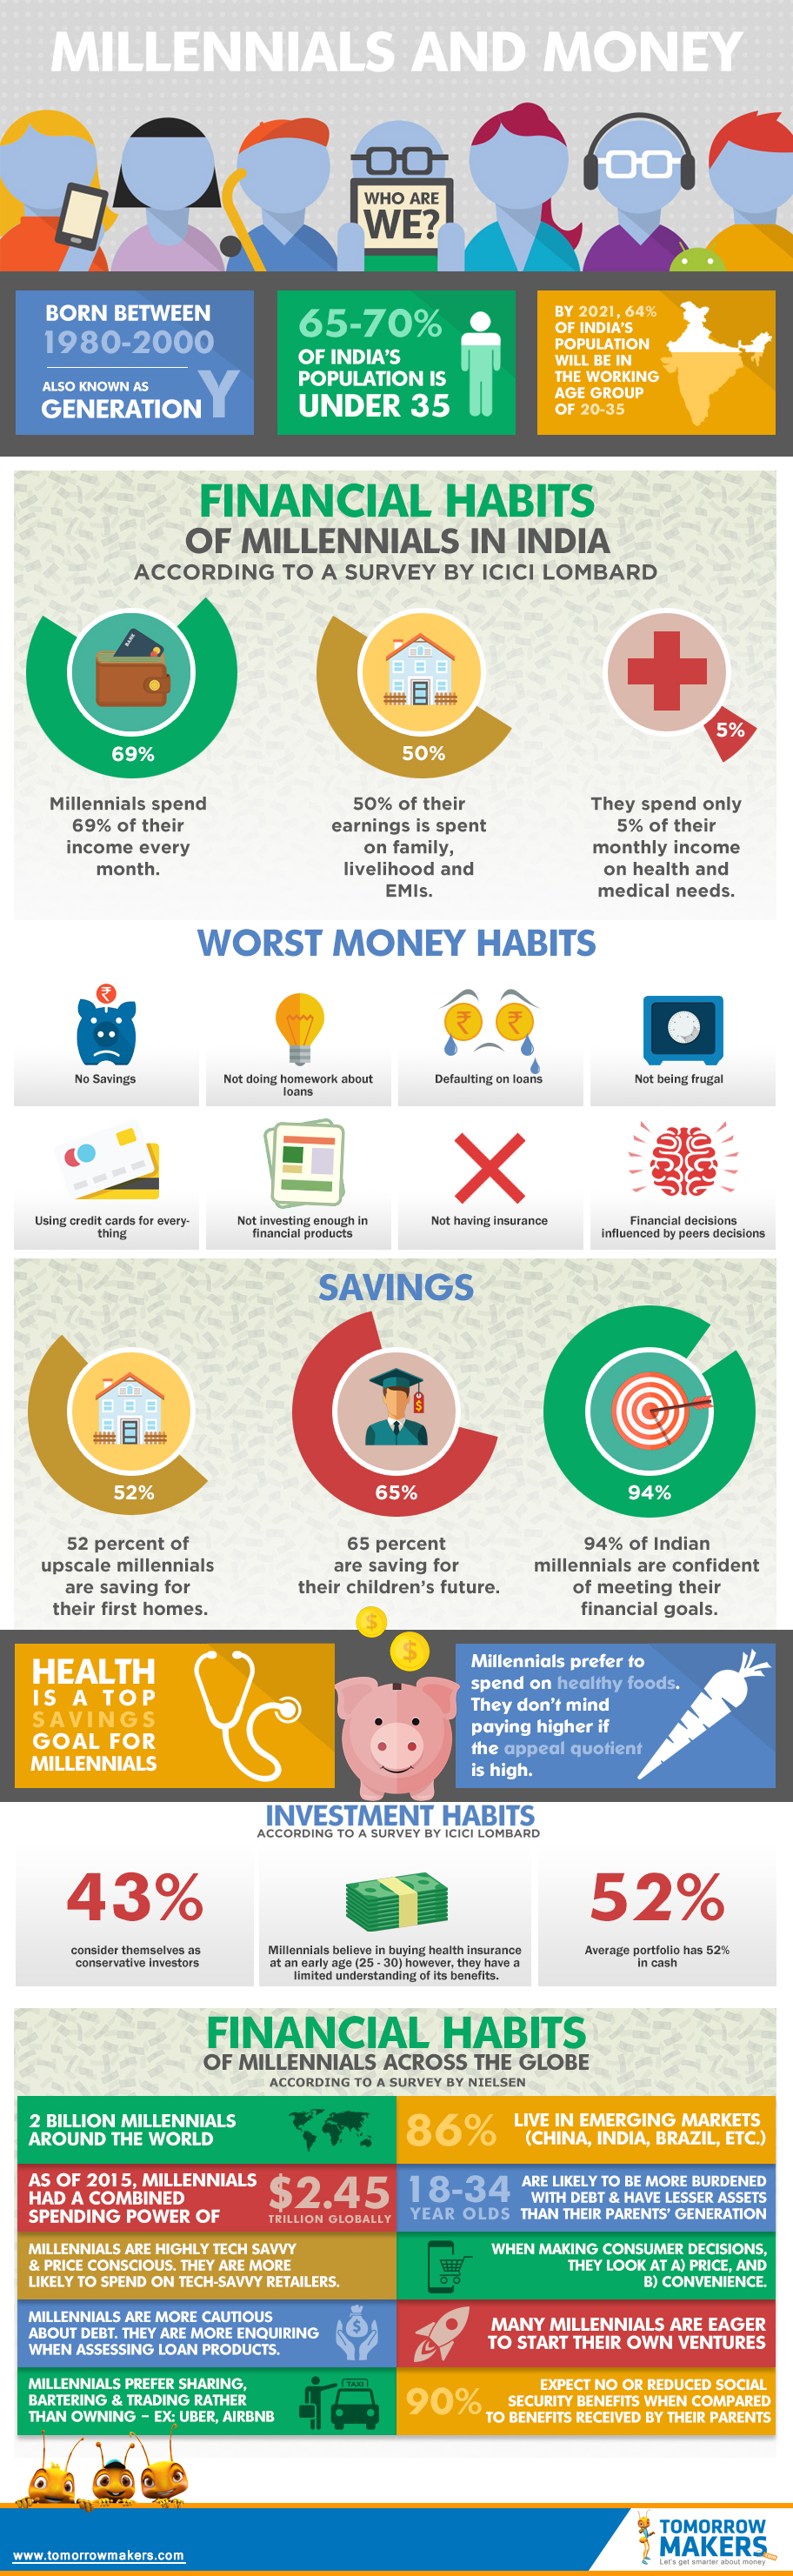 millennials-and-money-infographic